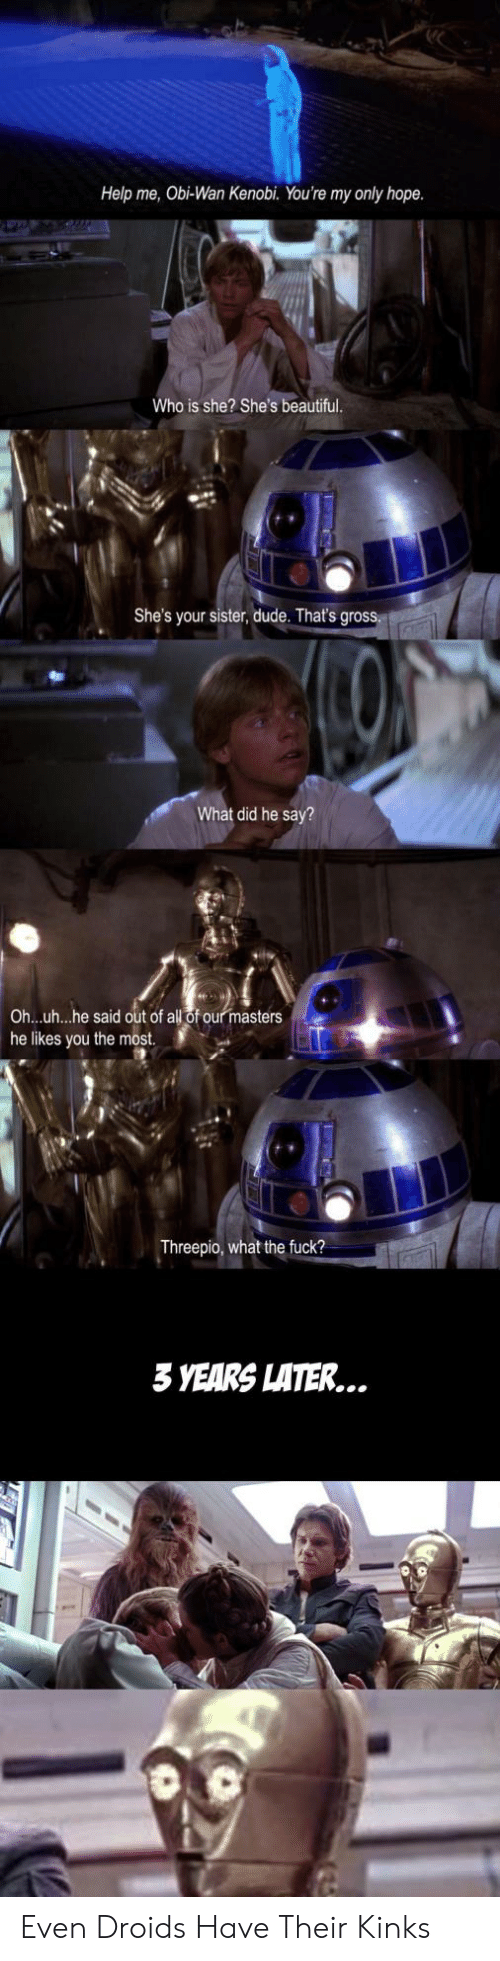 Obi-Wan Kenobi: Help me, Obi-Wan Kenobi. You're my only hope  Who is she? She's beautiful  She's your sister, dude. That's gross.  What did he say?  all of our masters  Ohuh...he said out of  he likes you the most.  Threepio, what the fuck?  3 YEARS LATER... Even Droids Have Their Kinks